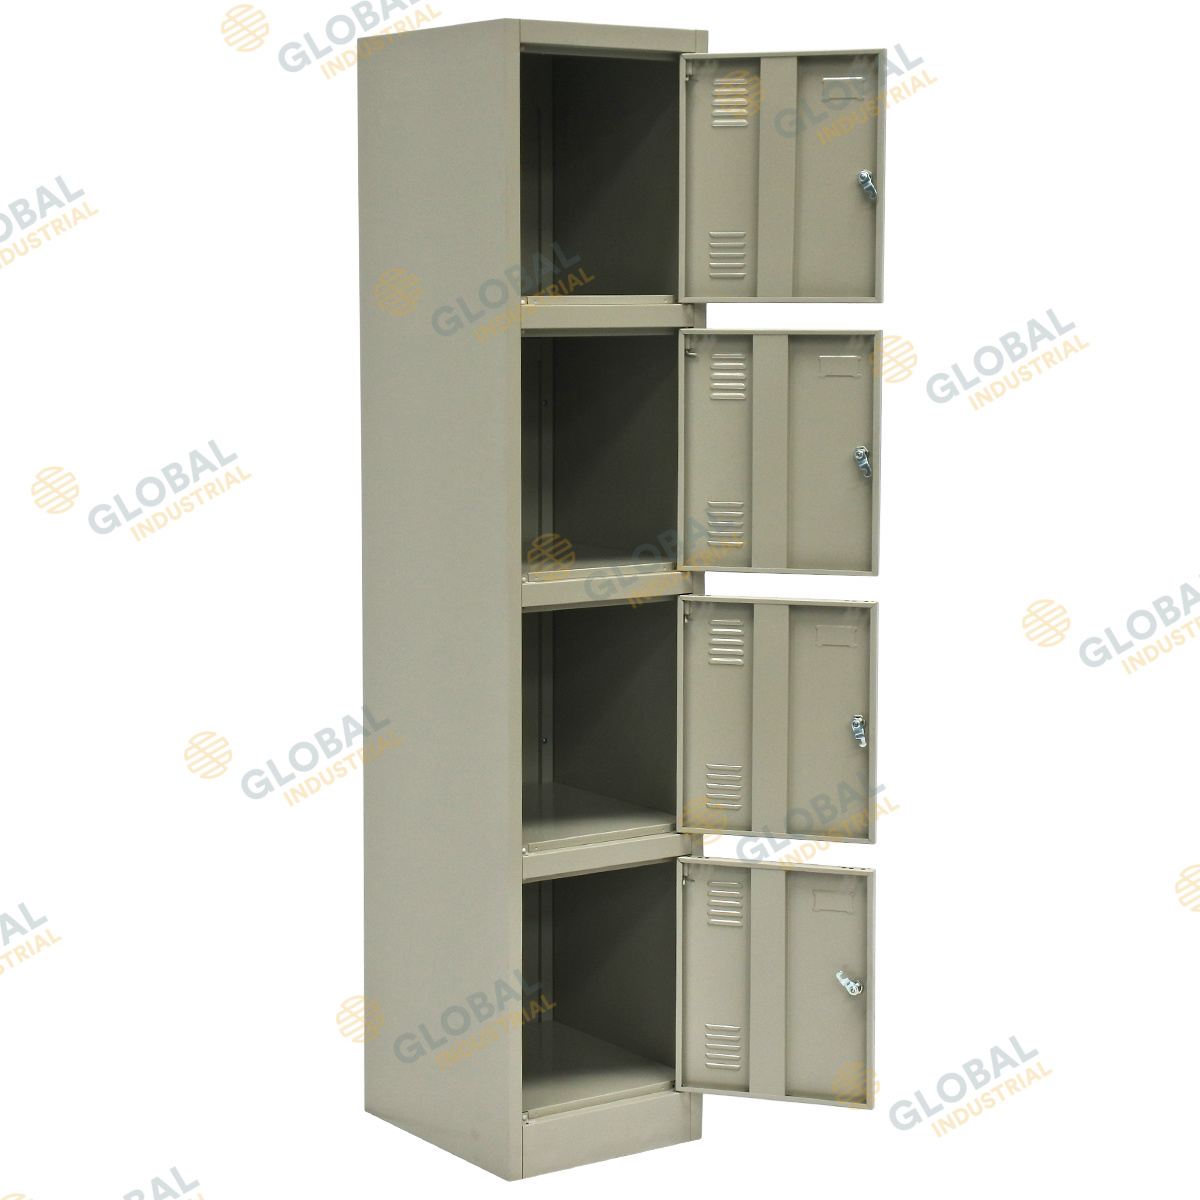 4 Door Single Locker